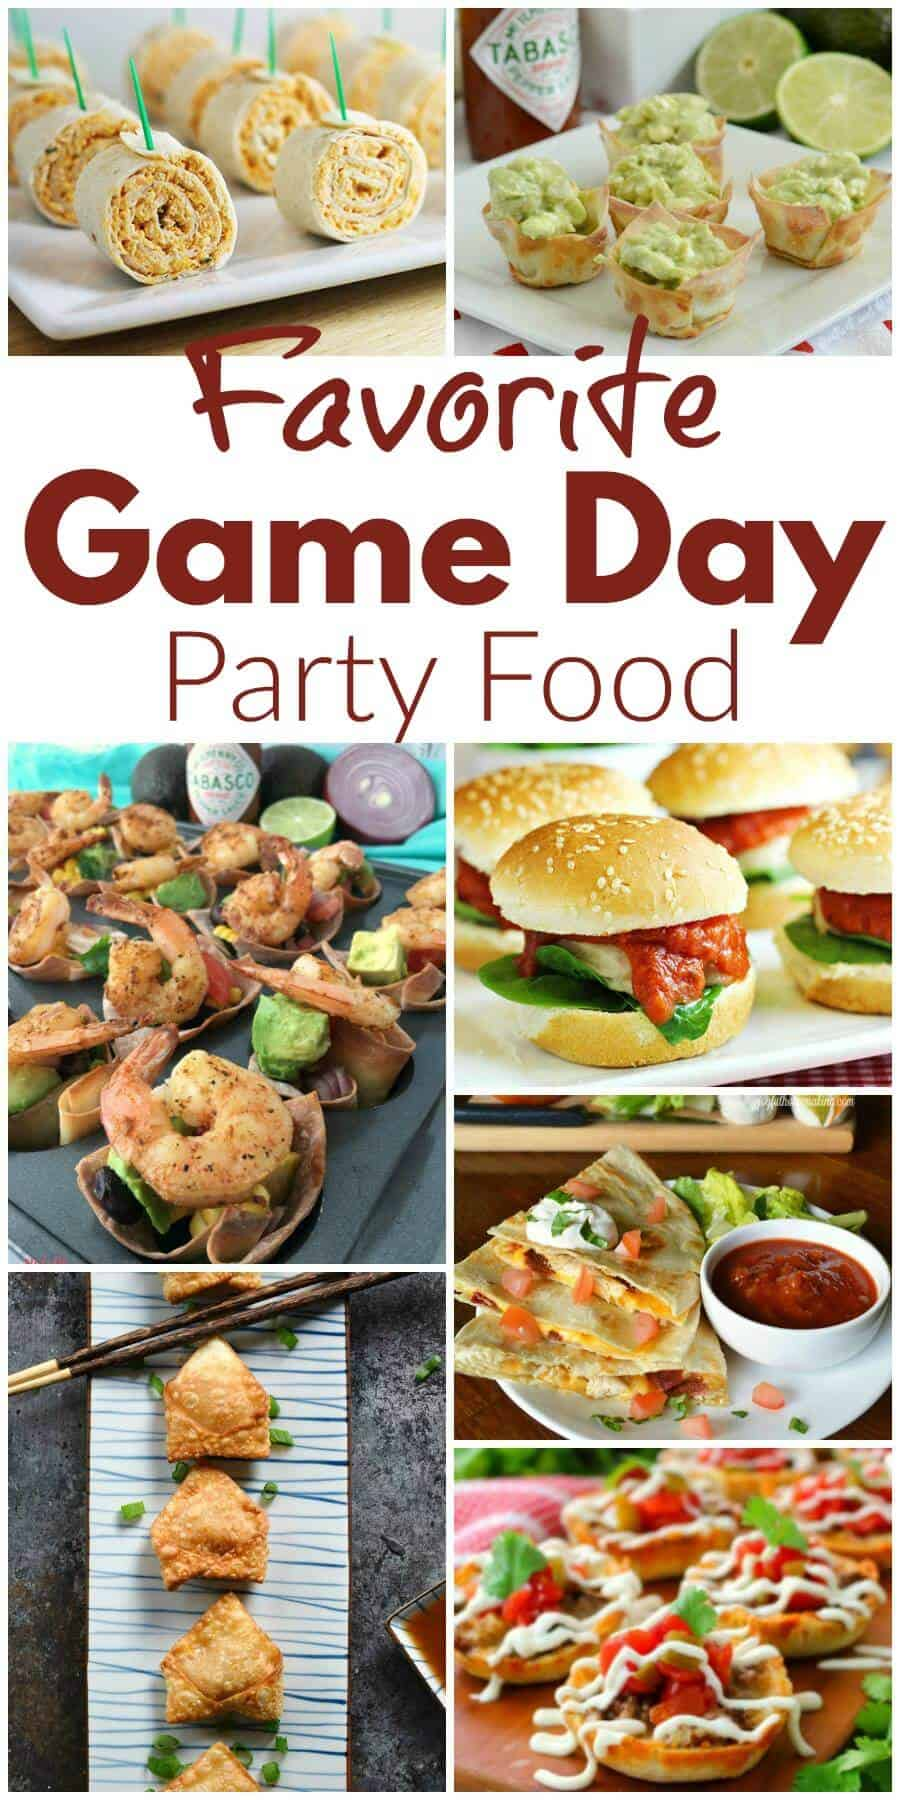 Favorite Game Day Party Food